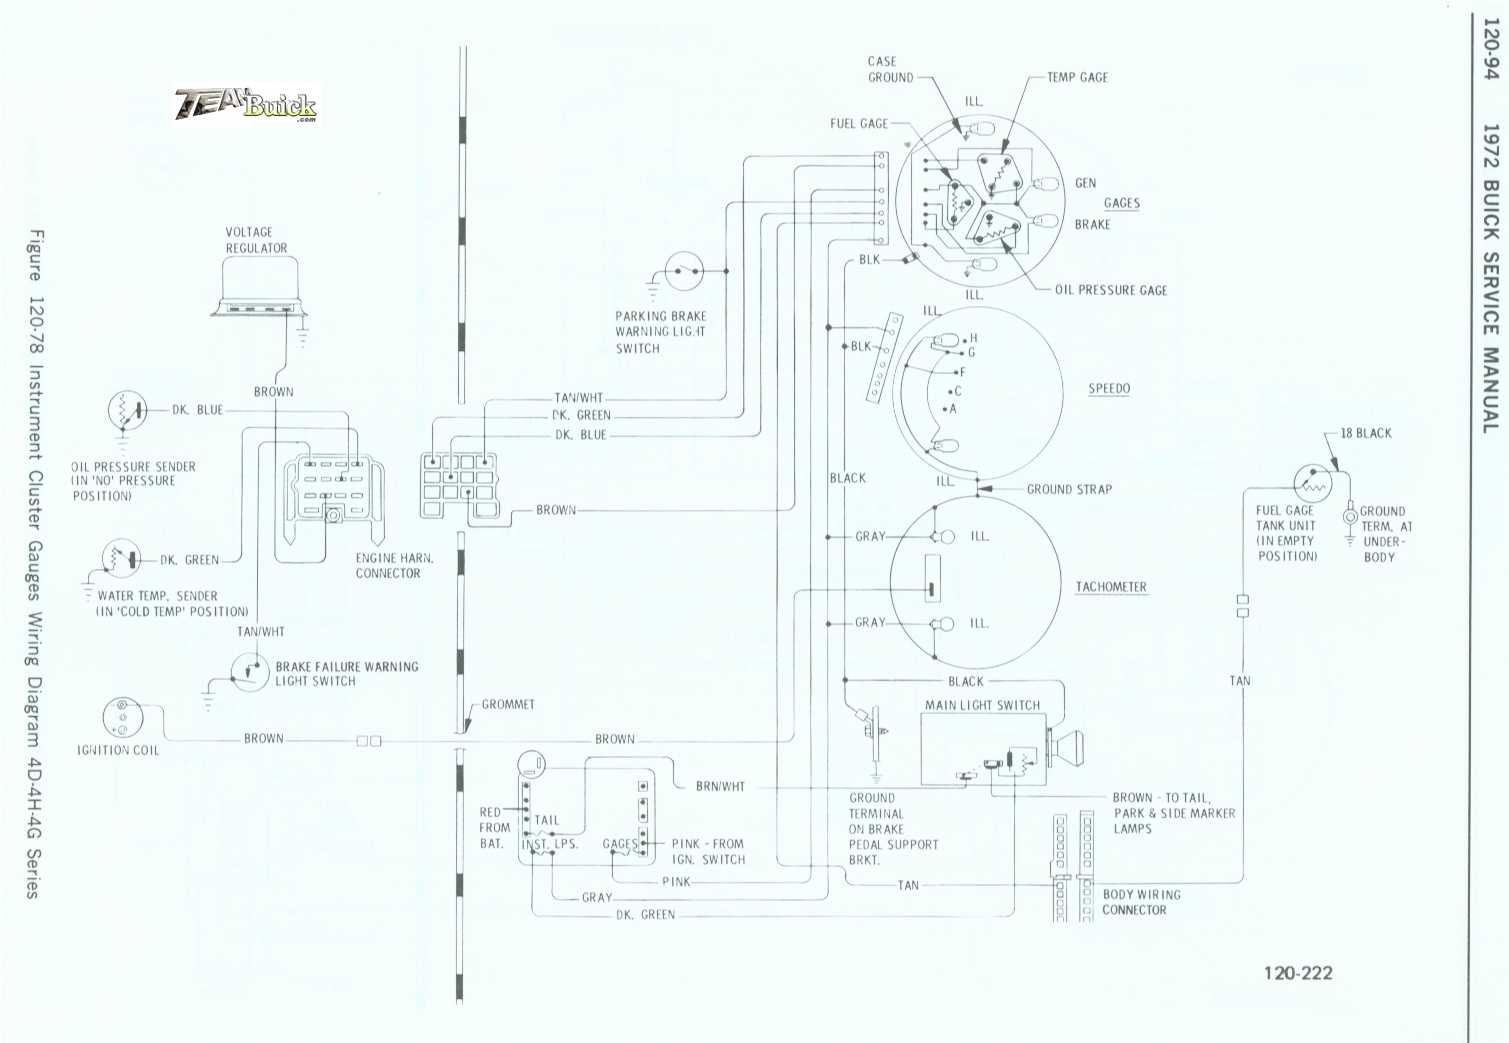 1972 Buick Instrument Cluster Gauges Wiring Diagram